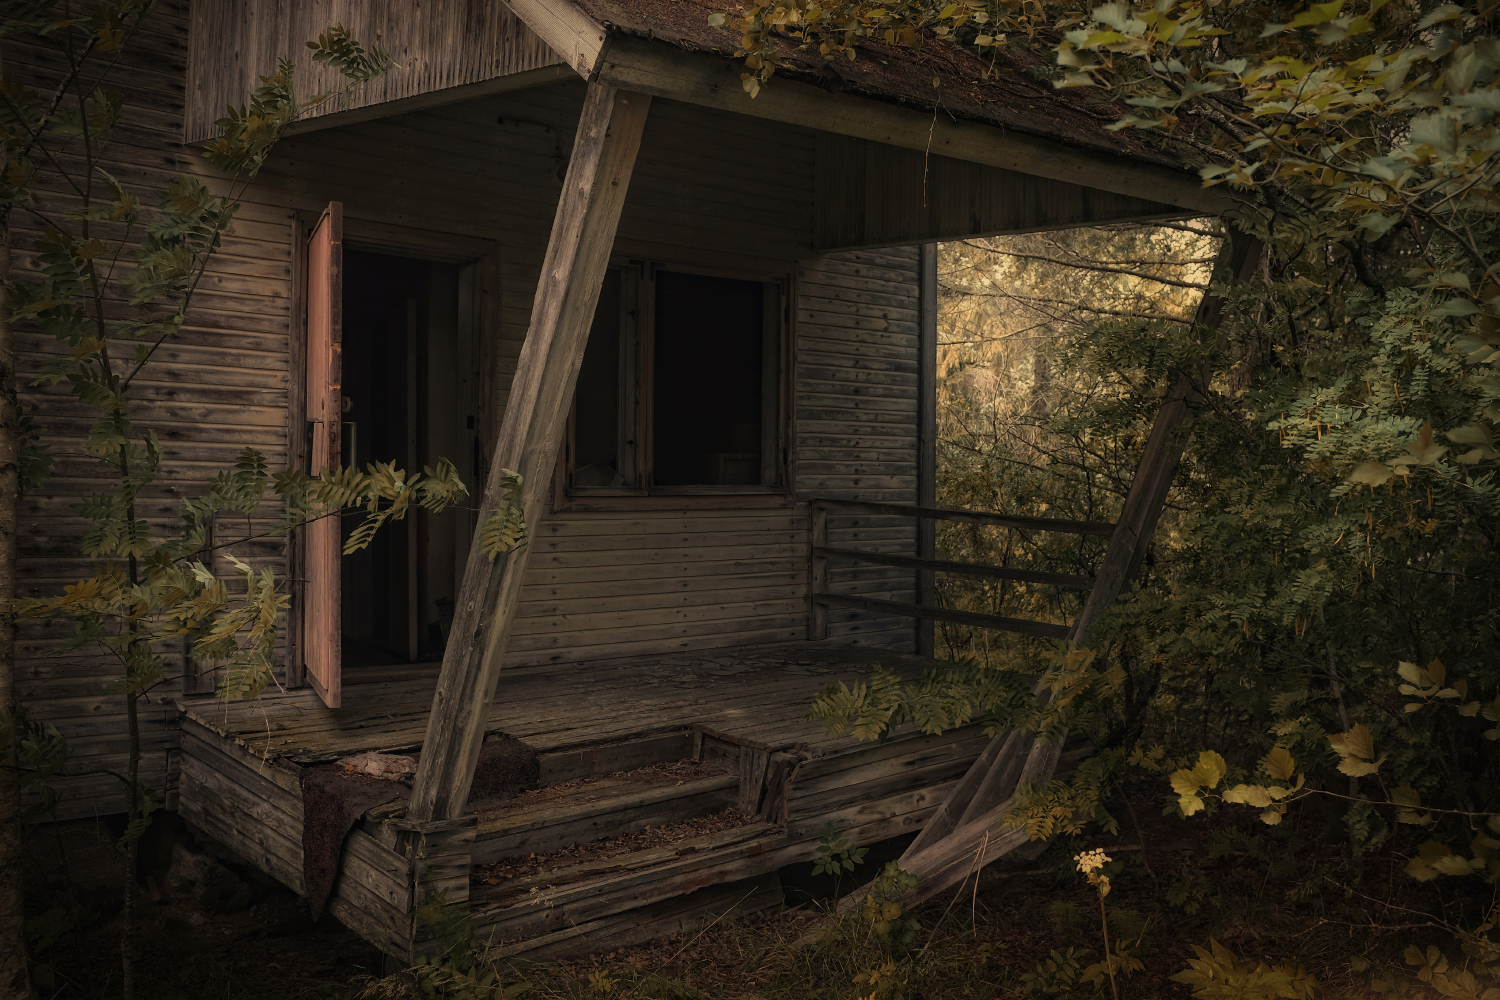 Abandoned and almost forgotten, part I of VI by wchild